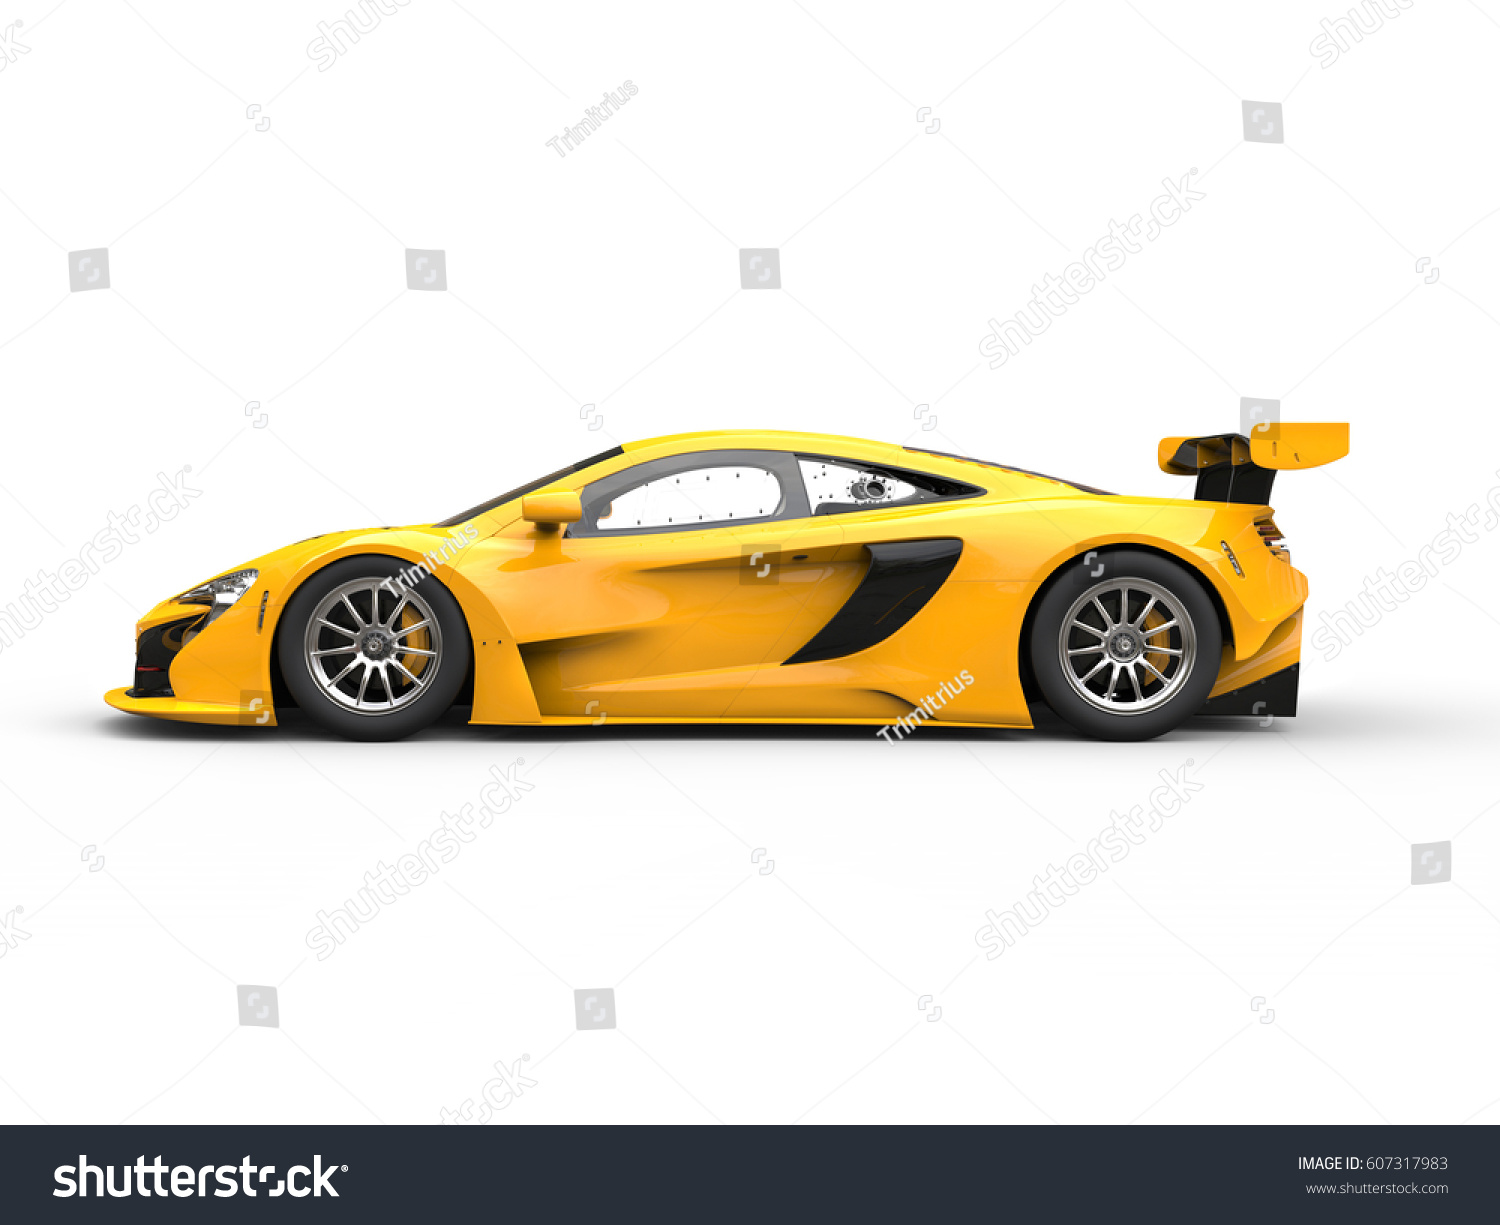 Yellow Shiny Modern Race Car   Side View   3D Illustration